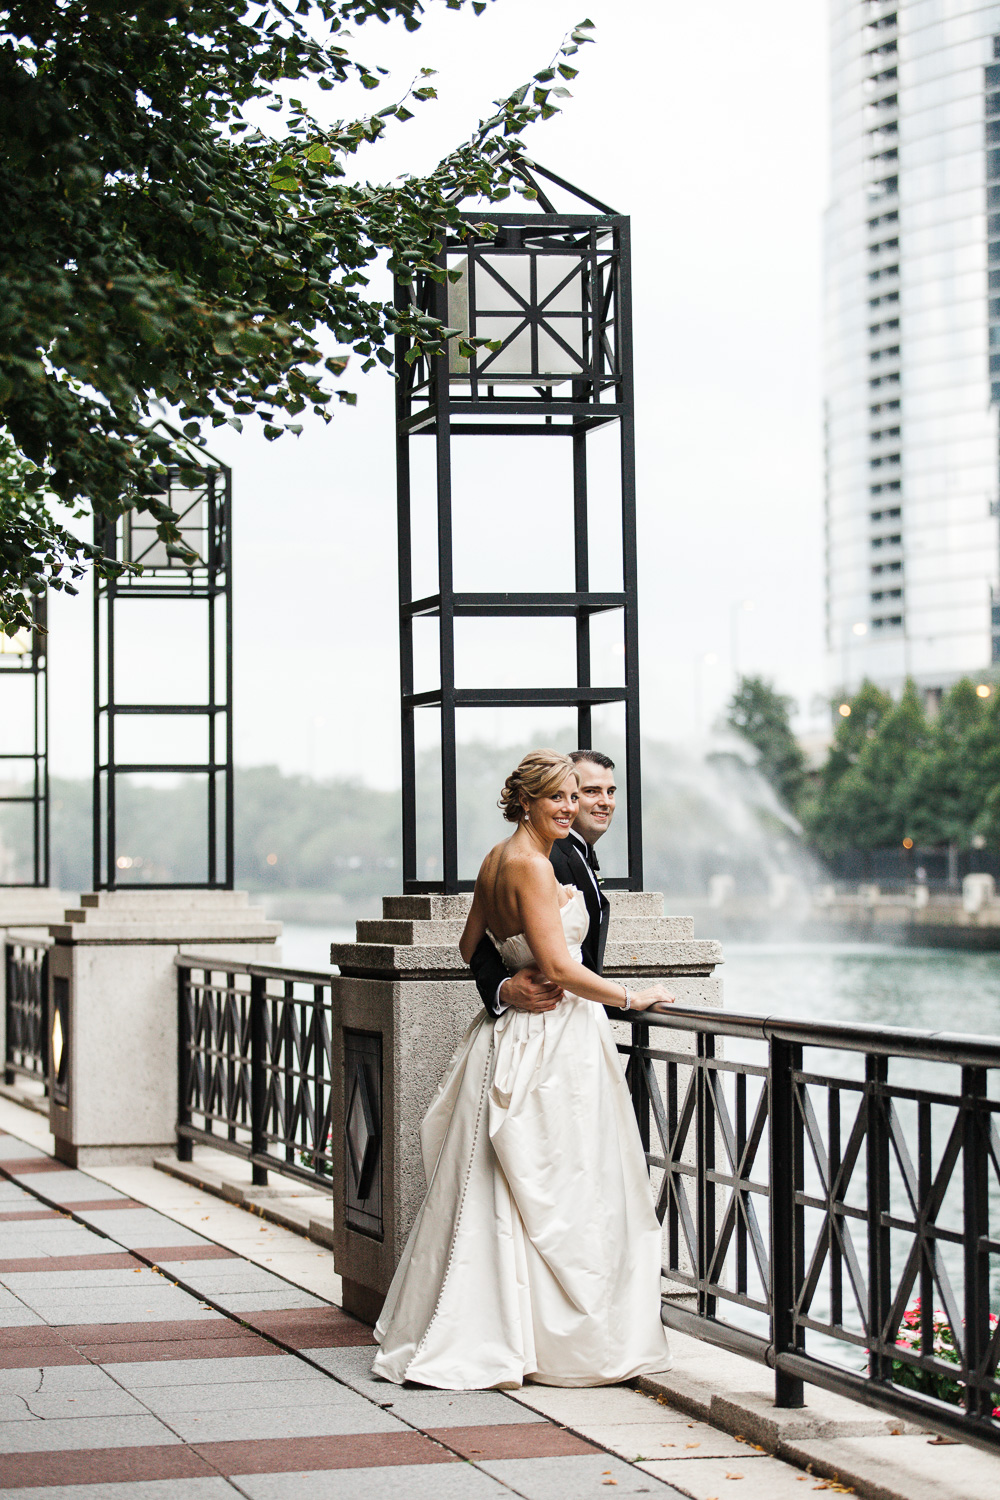 Wedding couple against Chicago riverwalk background